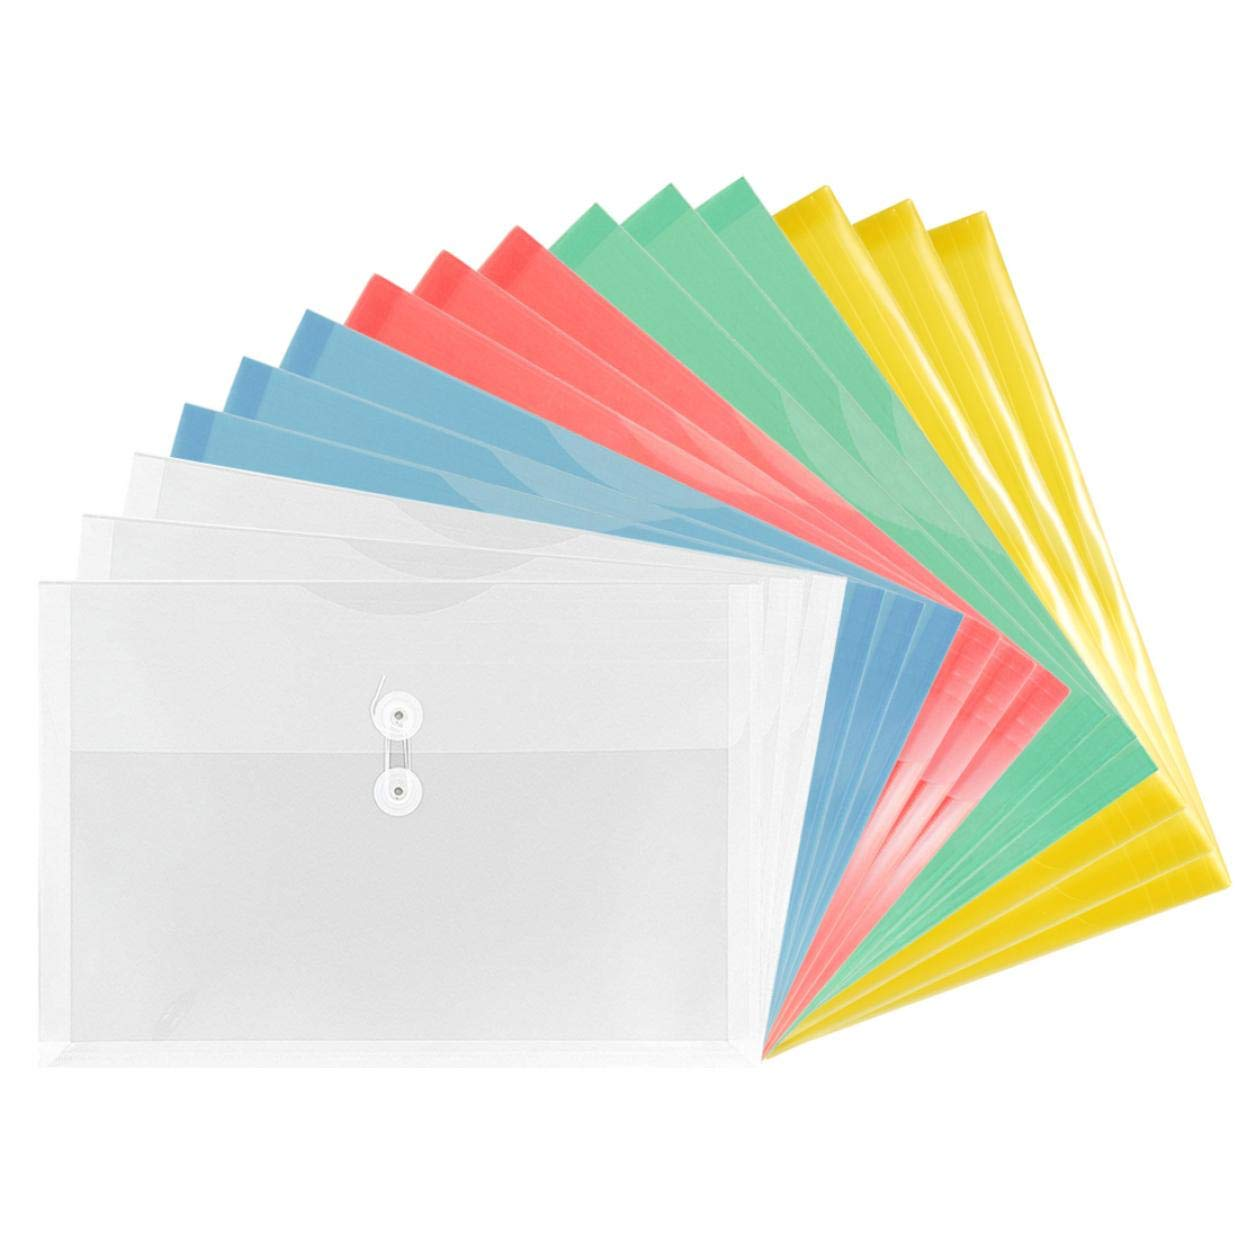 TIENO Assorted Clear Plastic Envelopes with String Closure Legal Size Side Loading Folders PVC Office Study Organizer 15PCS